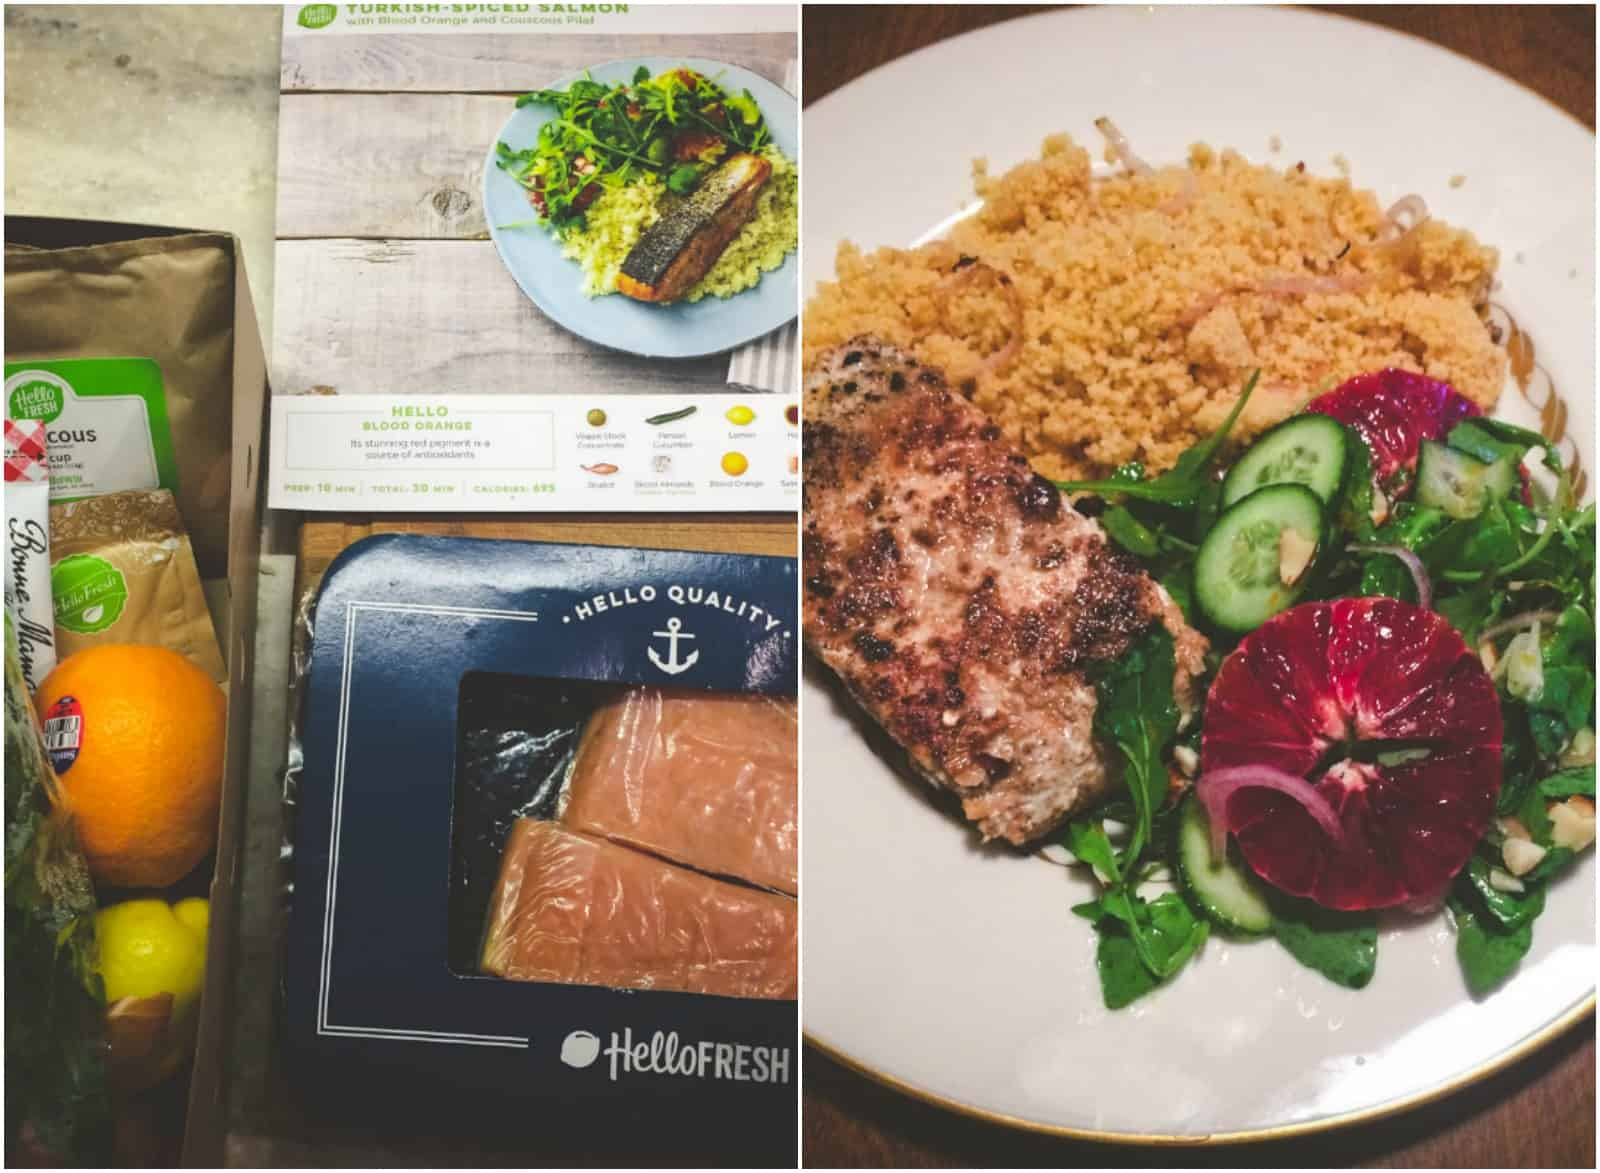 Hellofresh Warranty Coverage